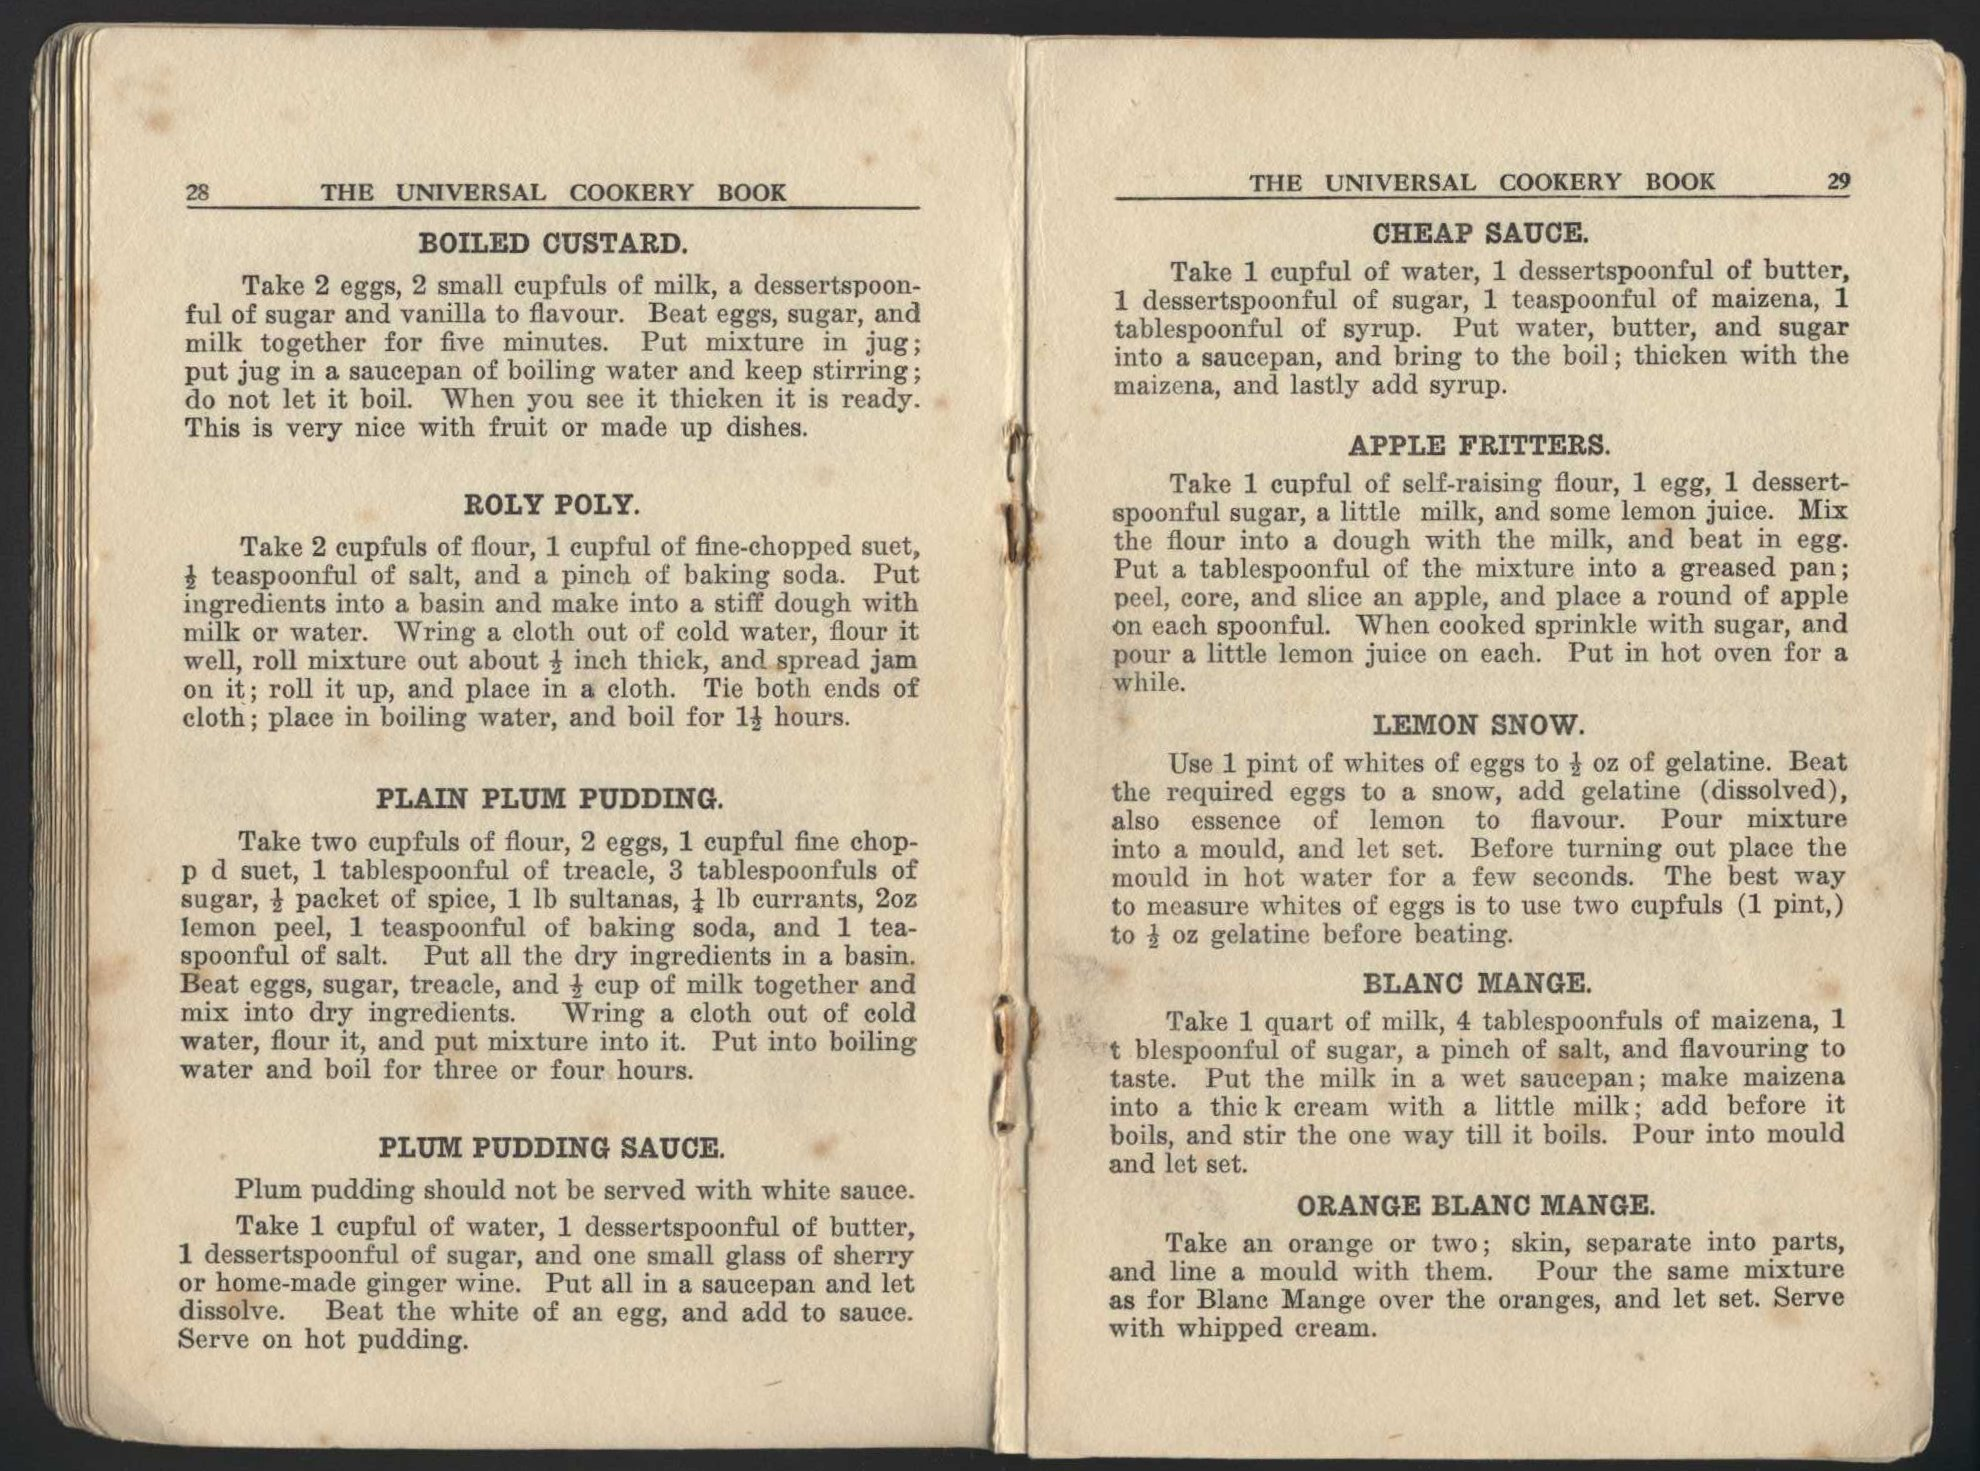 Mrs J. Beaton (Editor). The universal cookery book: for the cottage or the palace. 5th edition. Dunedin: Mills, Dick and Co., 1925.